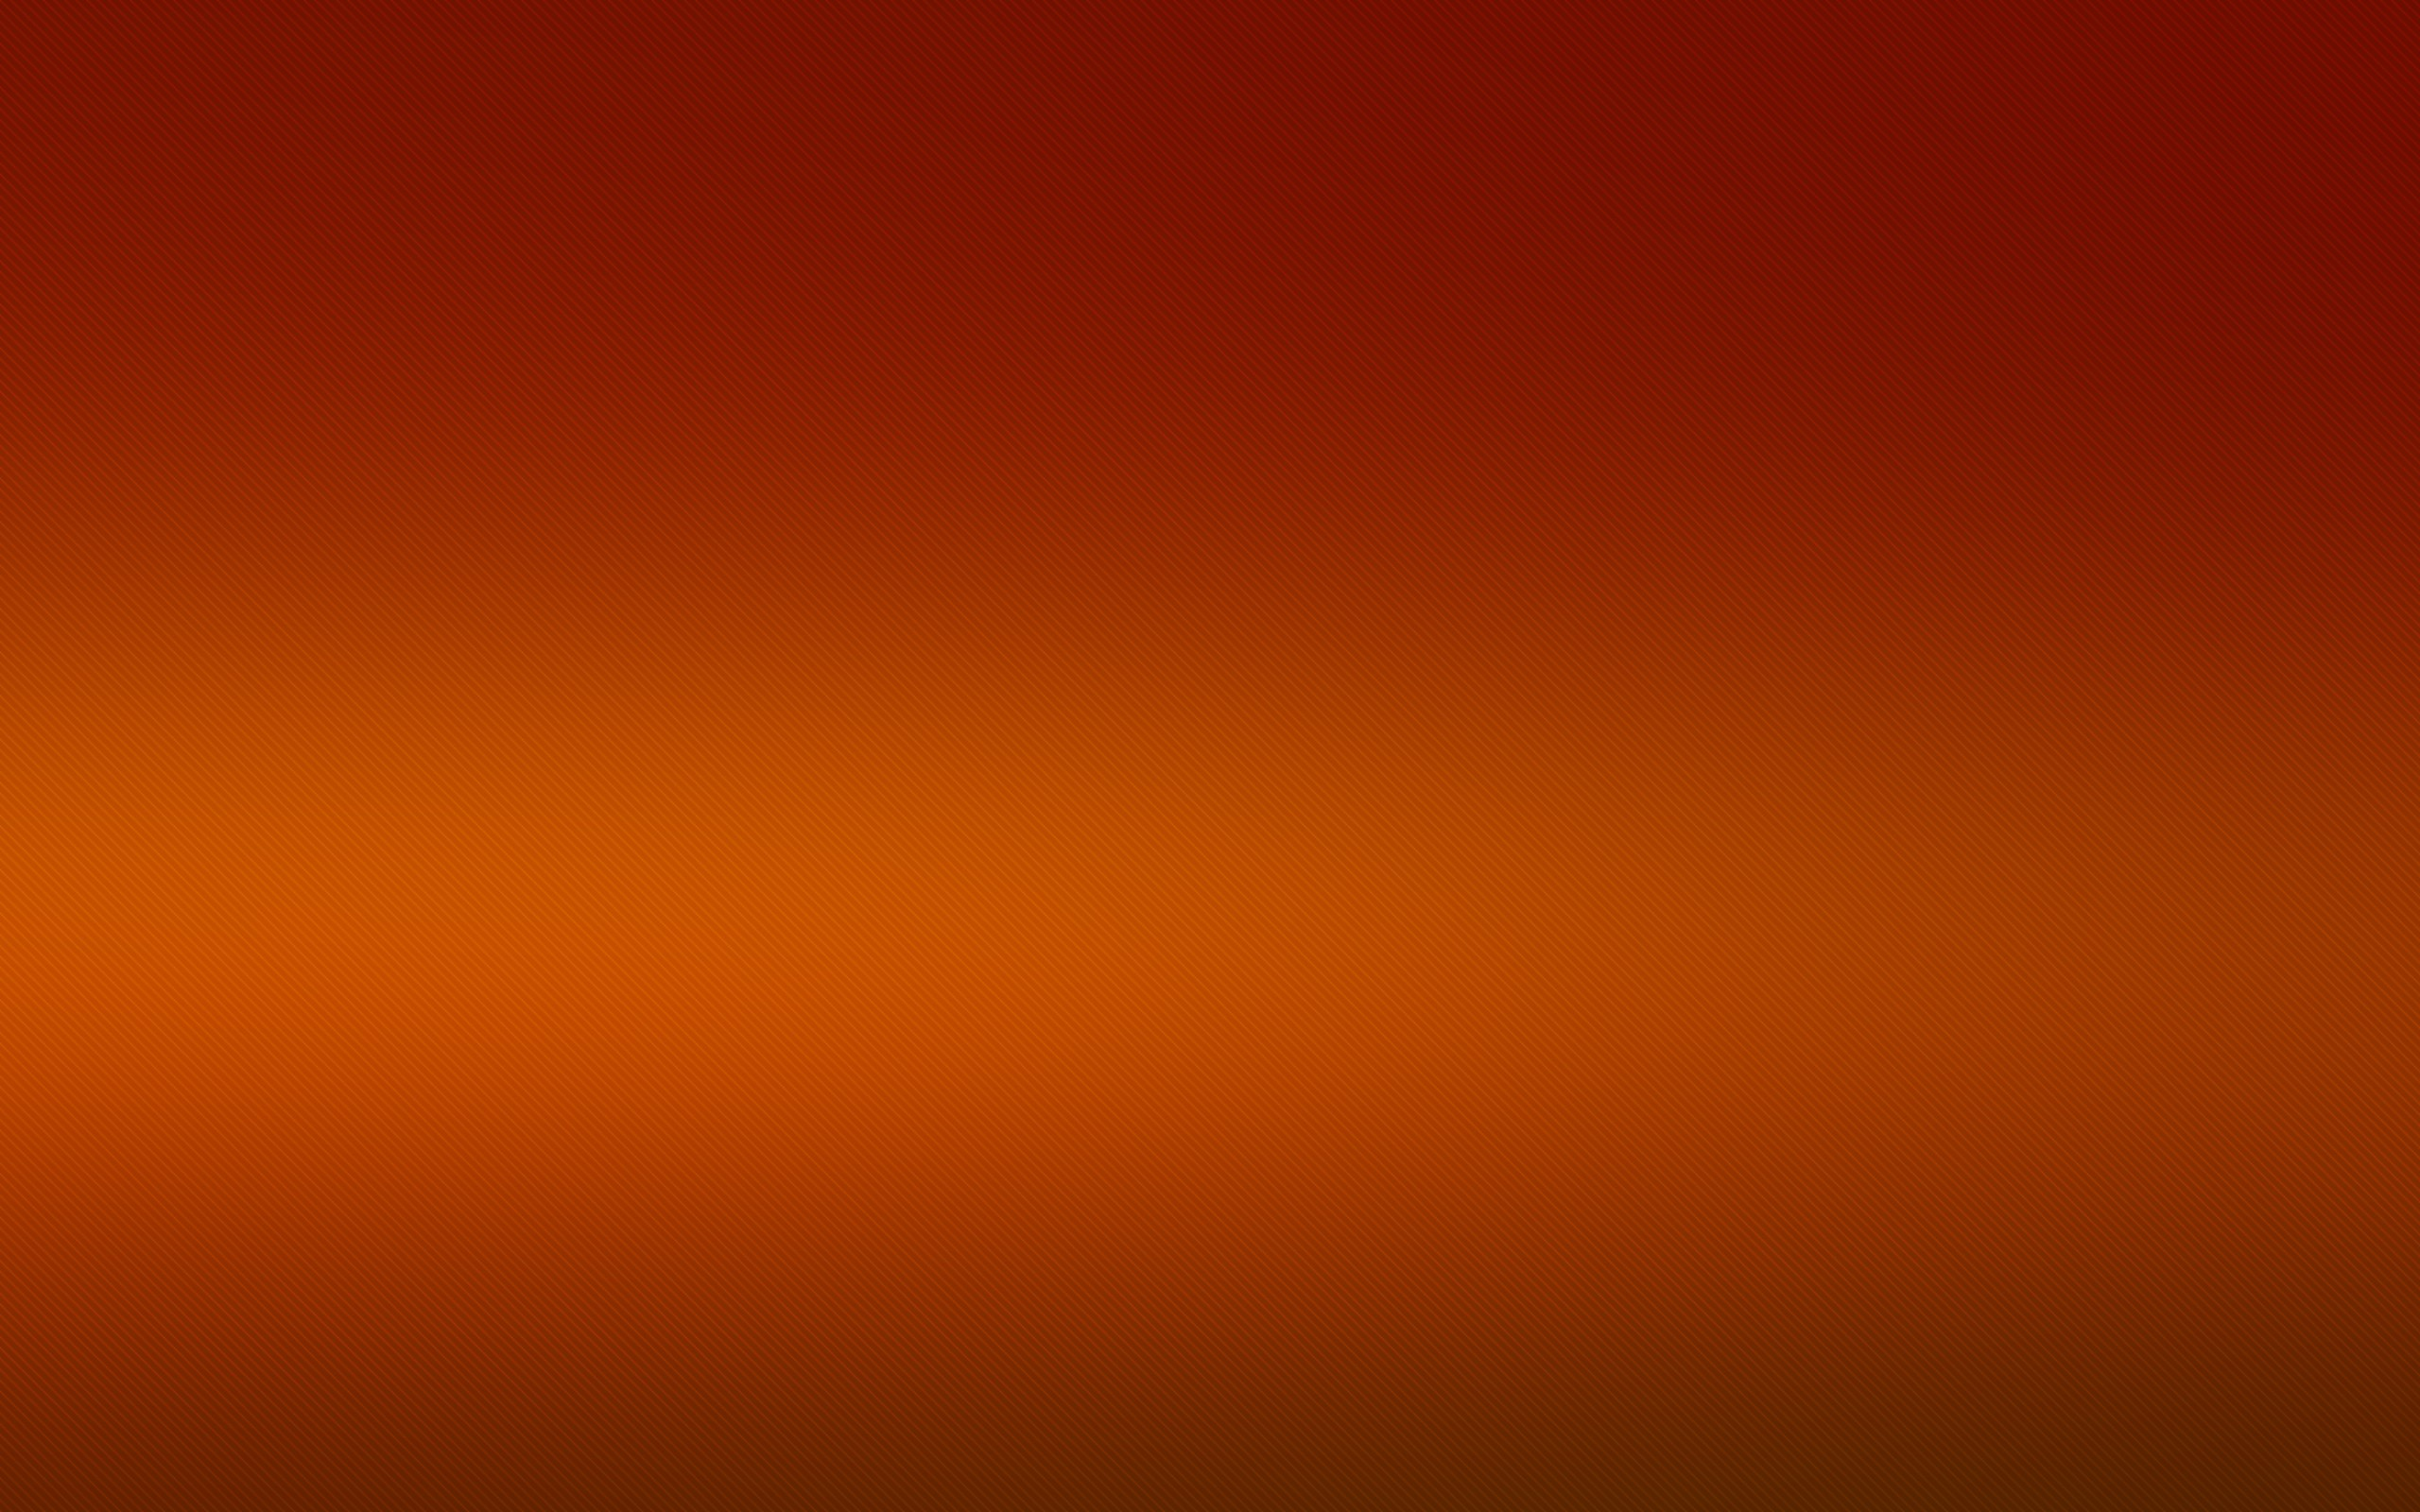 Solid Color Backgrounds wallpaper 249643 2560x1600